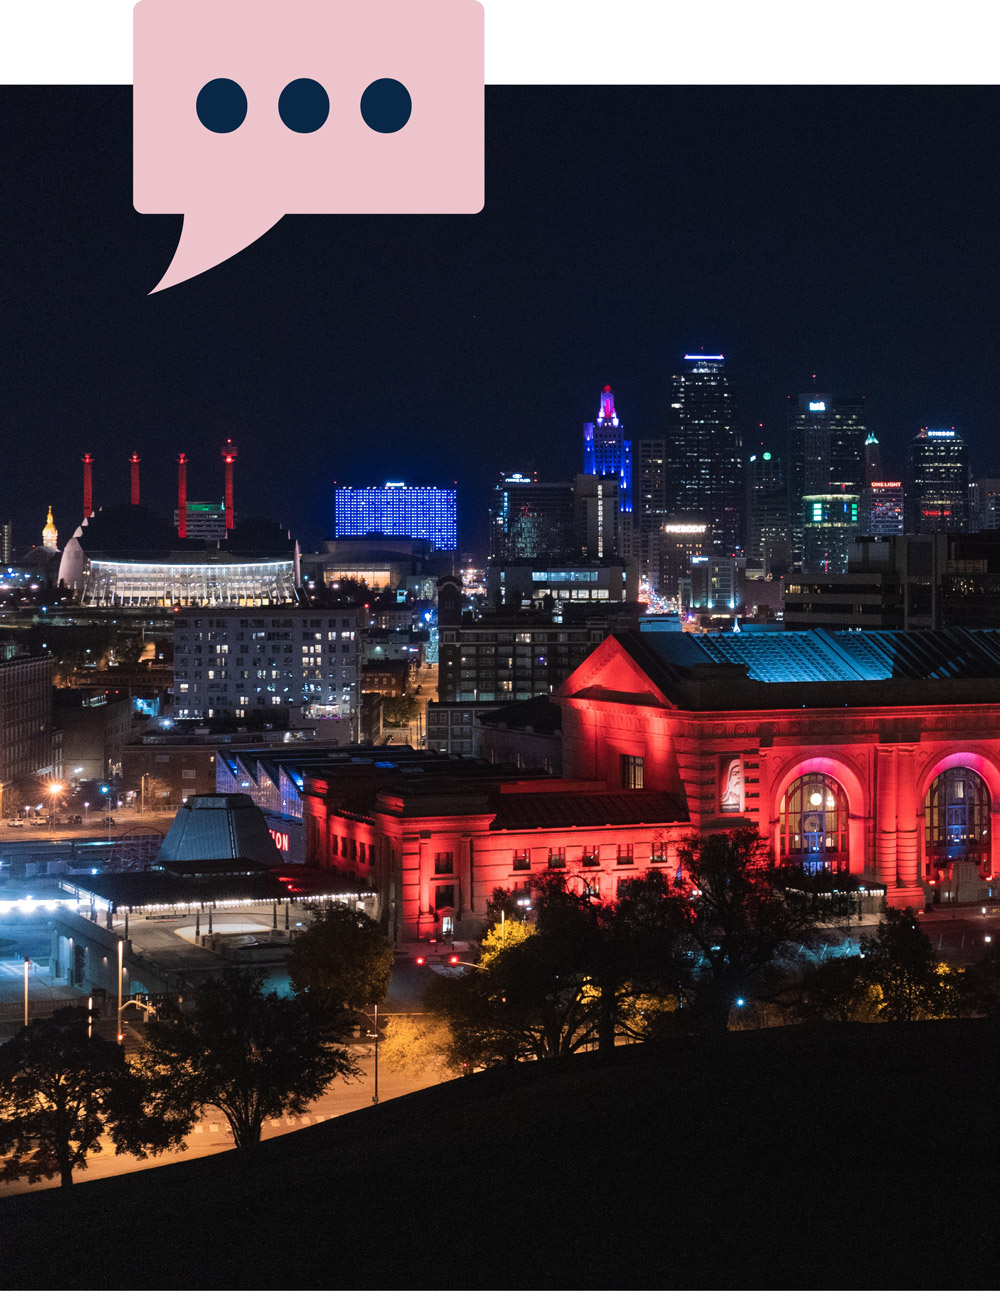 An image of the Kansas City skyline, taken at night, with an illustration of a quote bubble at the top.